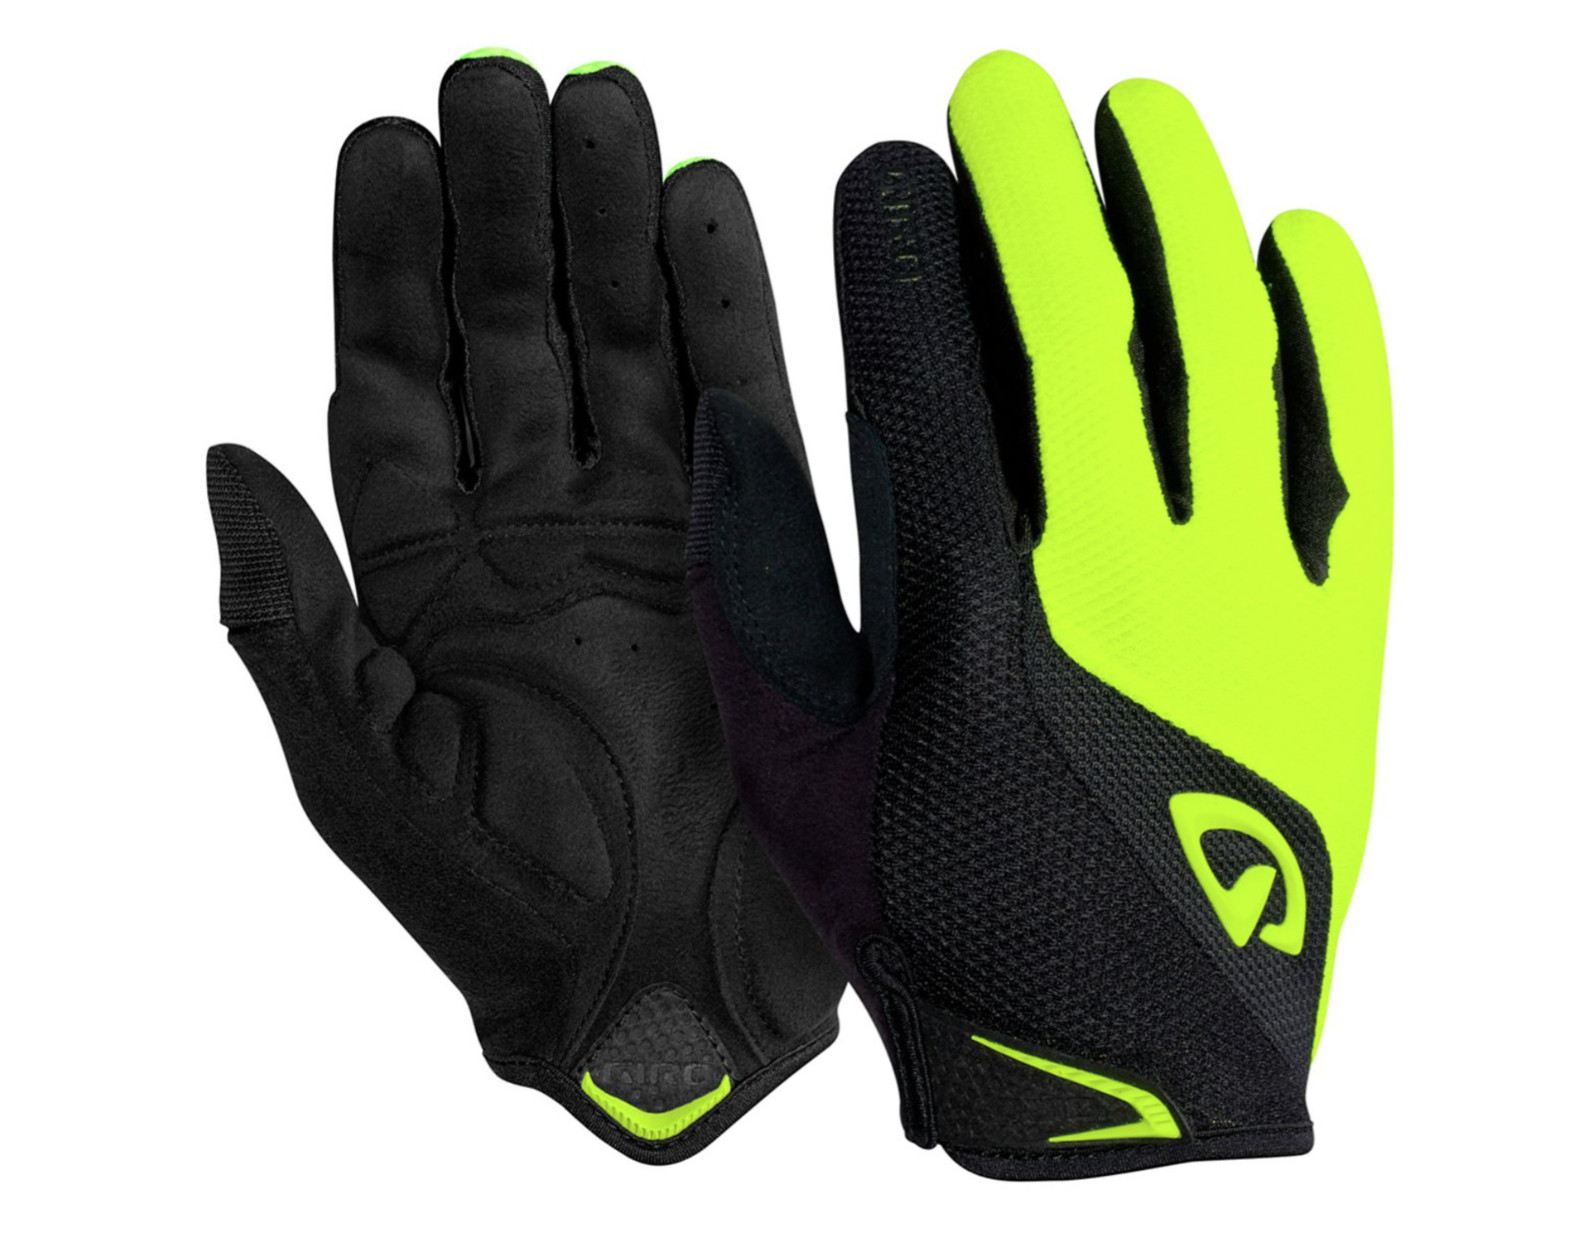 Giro Bravo LF  Gloves Giro Bravo LF Gloves - Black : Highlight Yellow